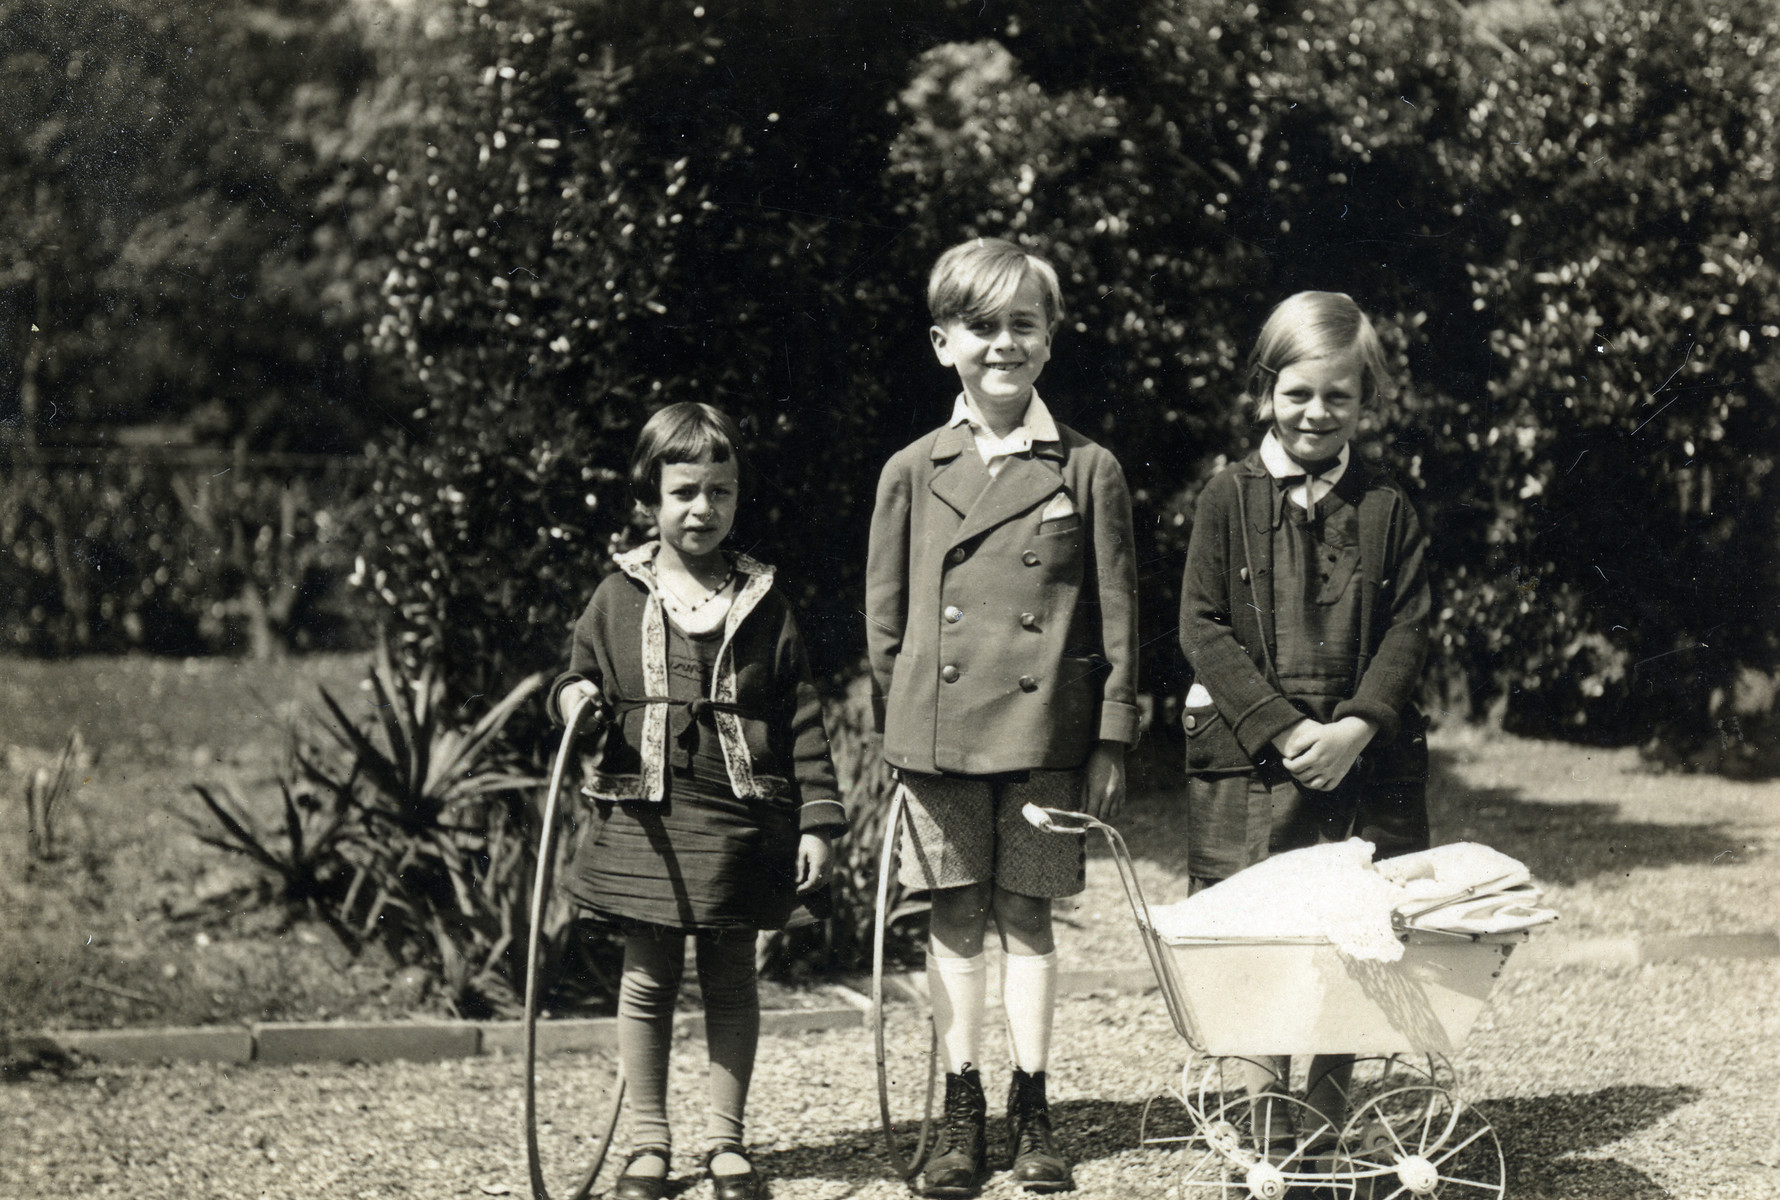 Anna Kohn (left) poses with two other children with hoops and a toy baby carriage.